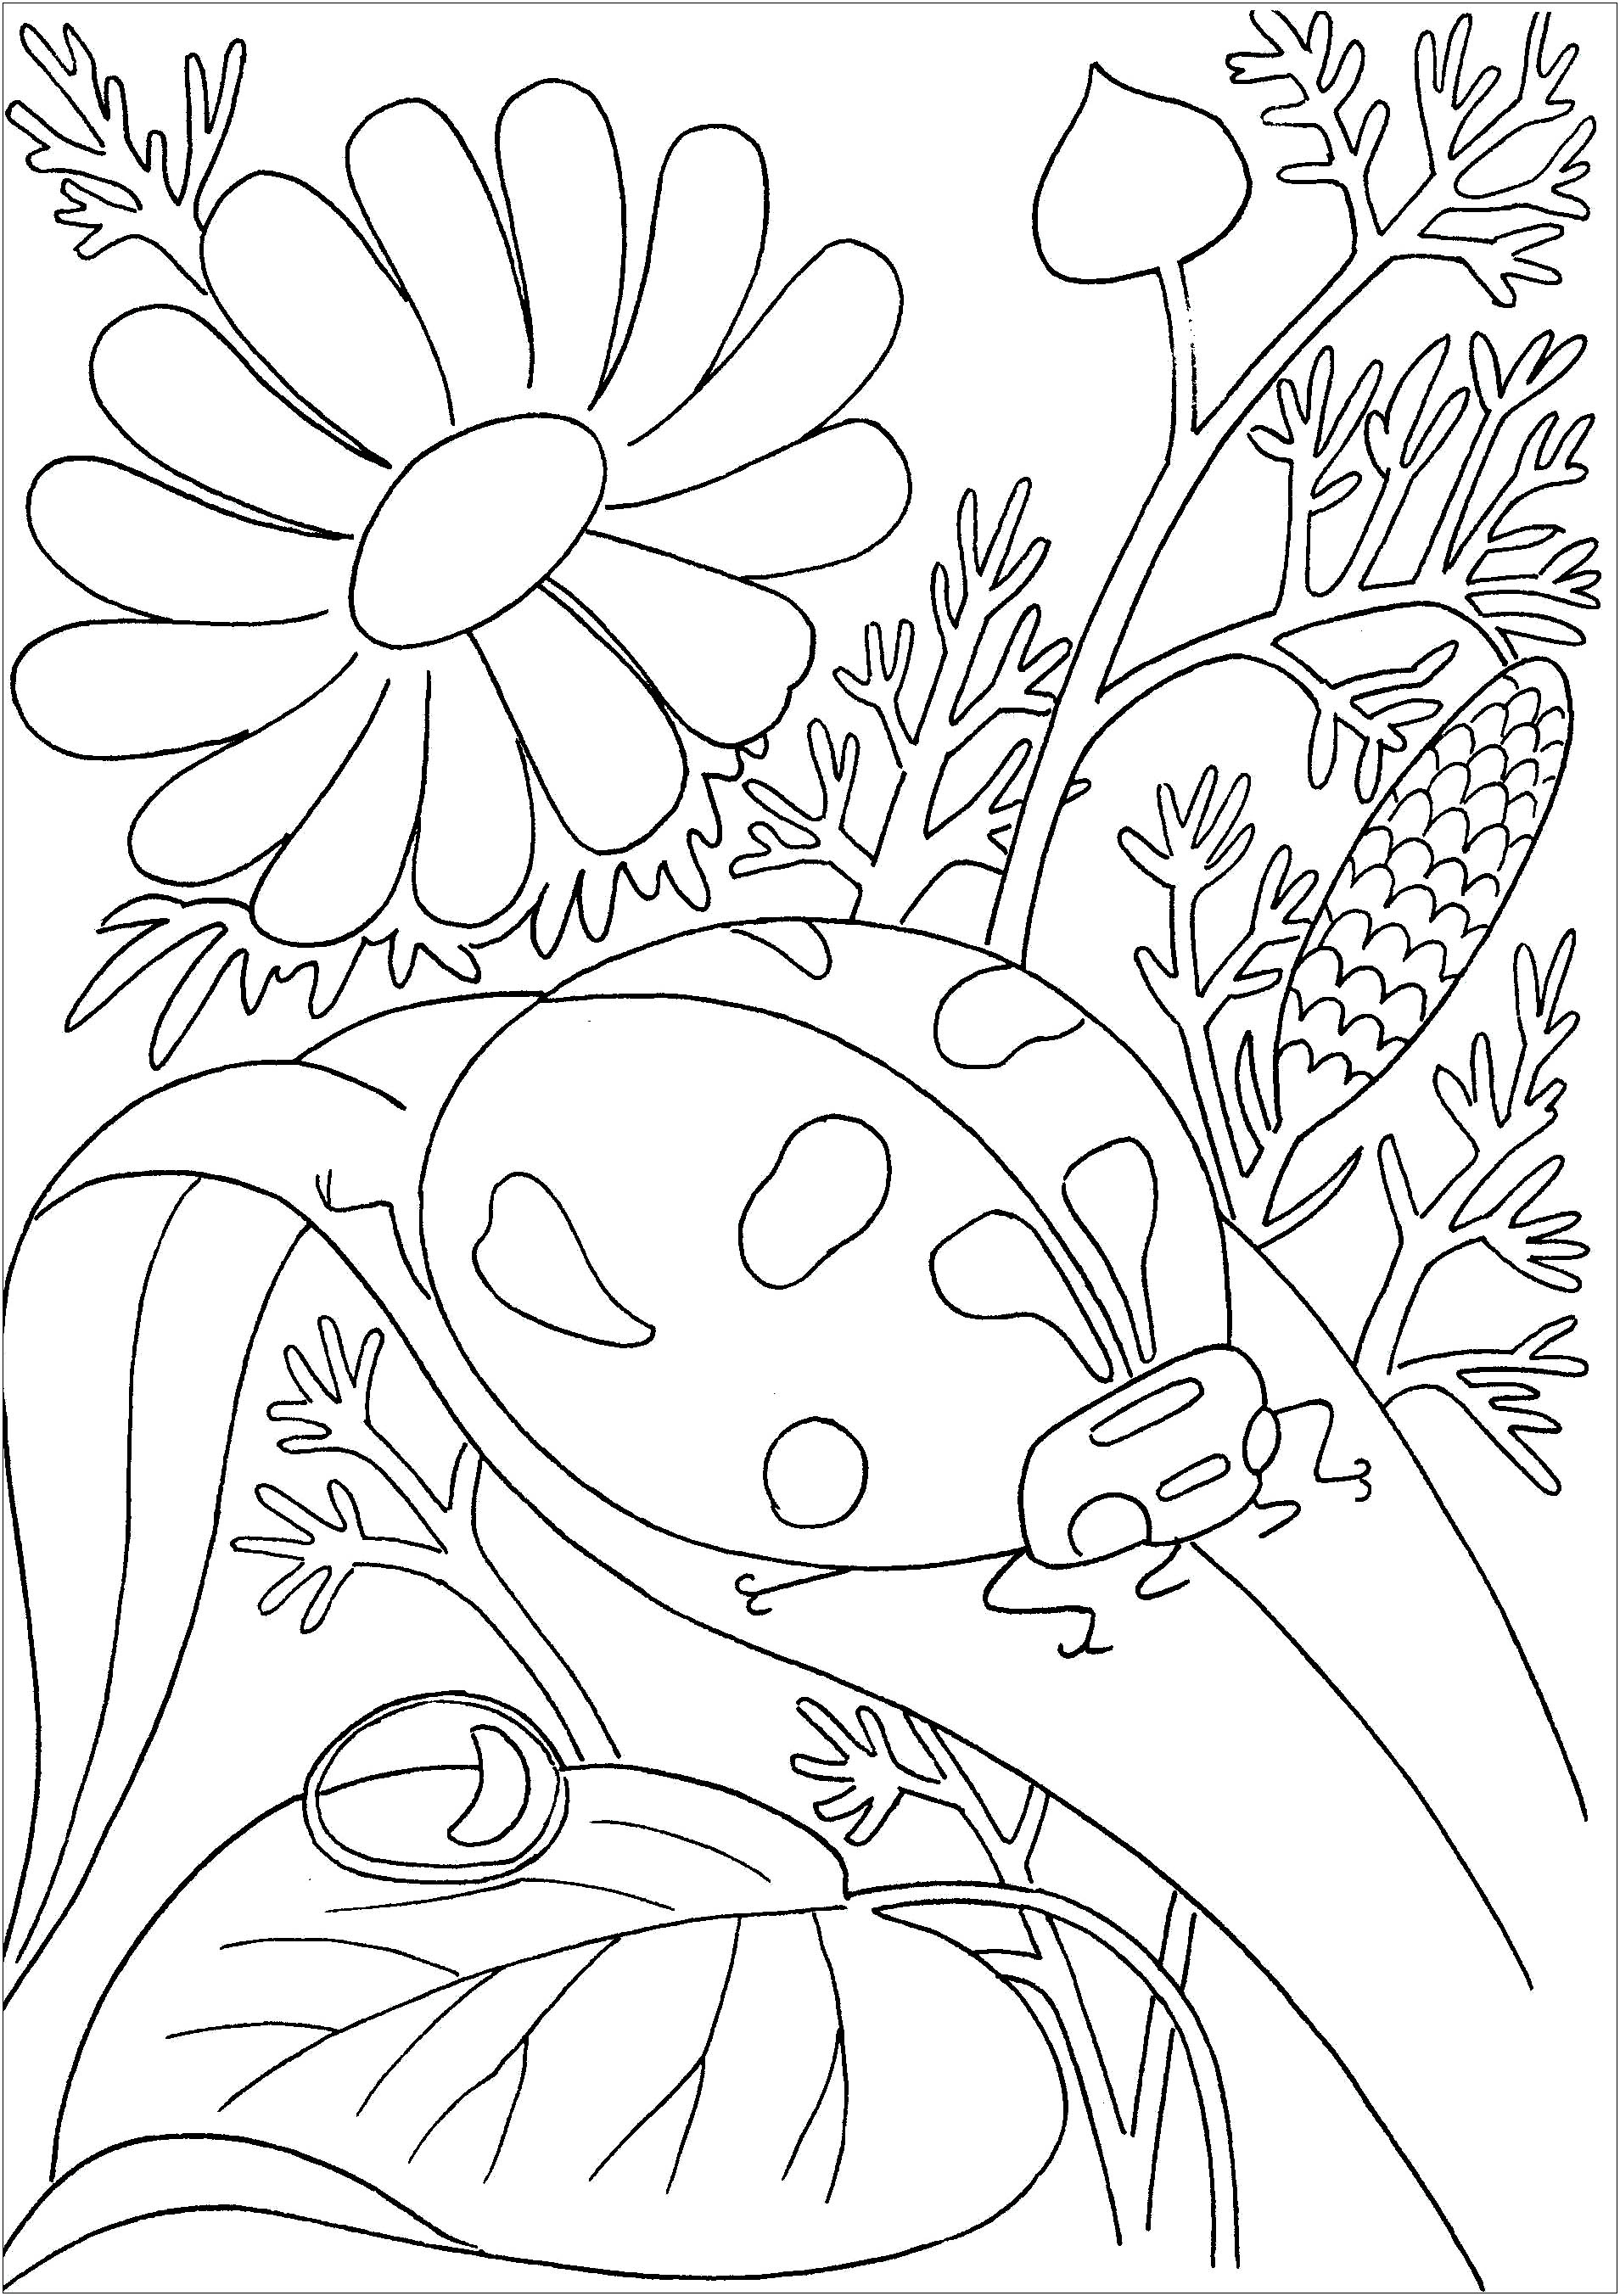 Free Insects coloring page to print and color, for kids